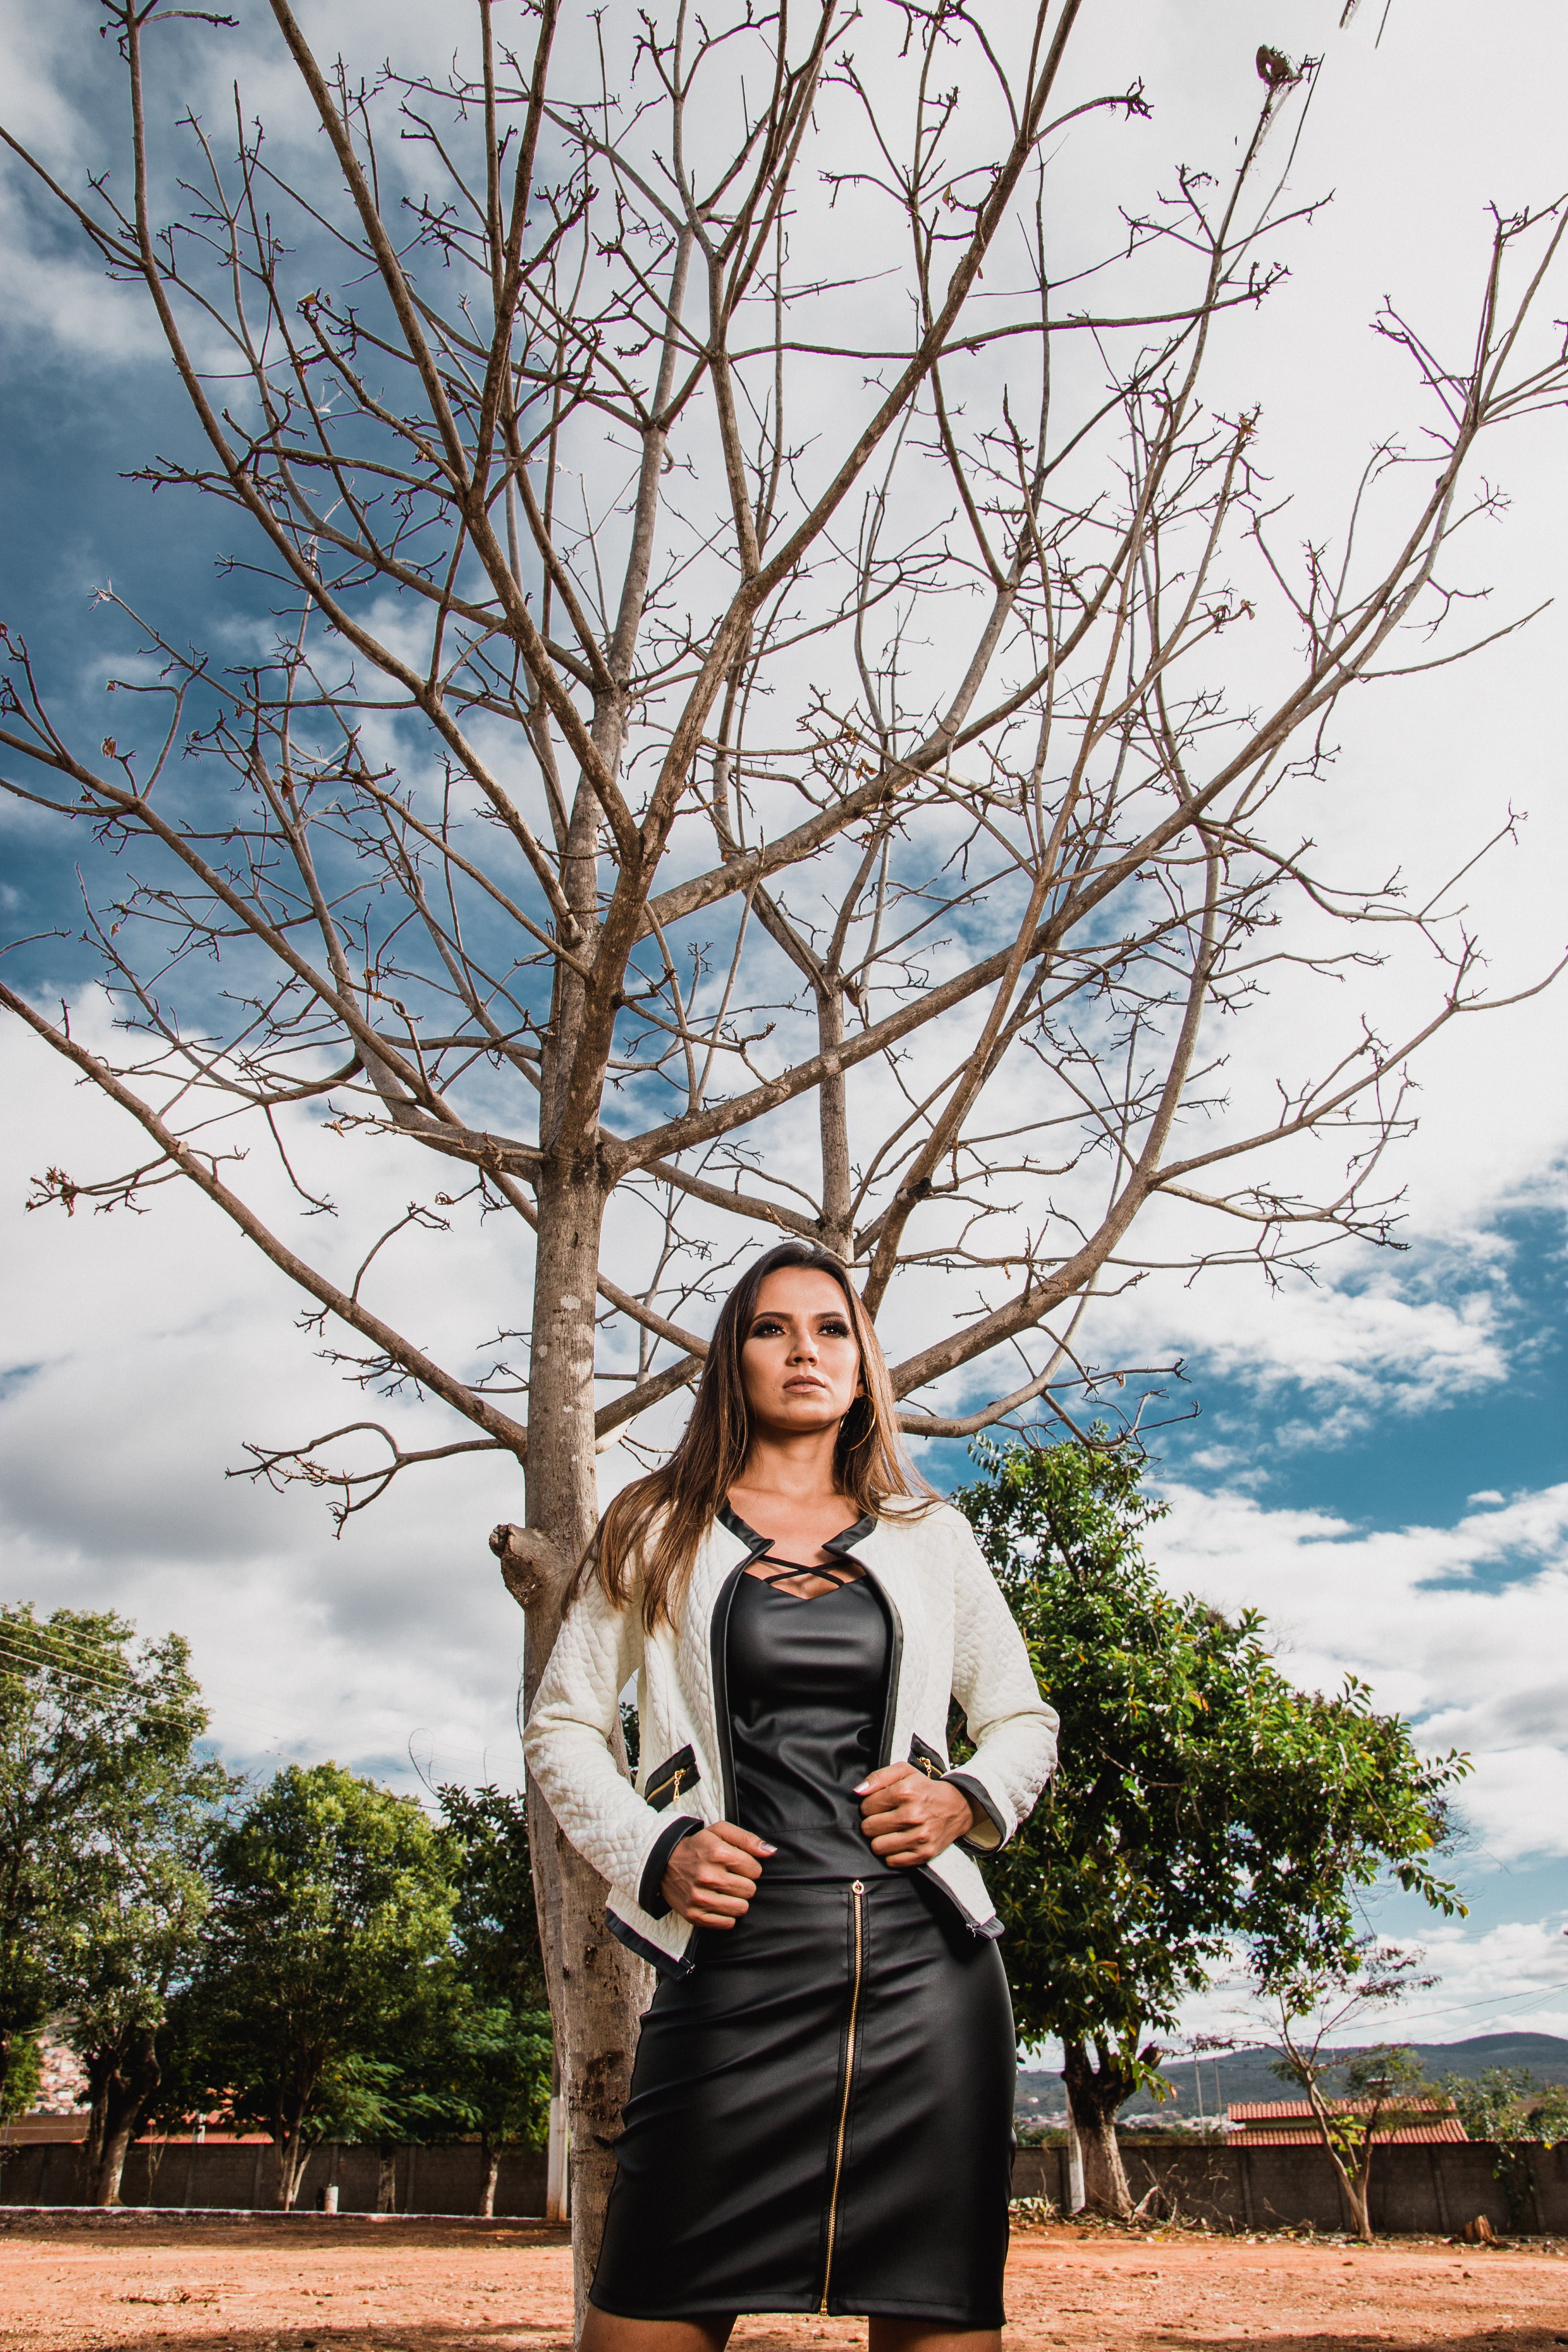 Photo Of Woman Standing Near Tree